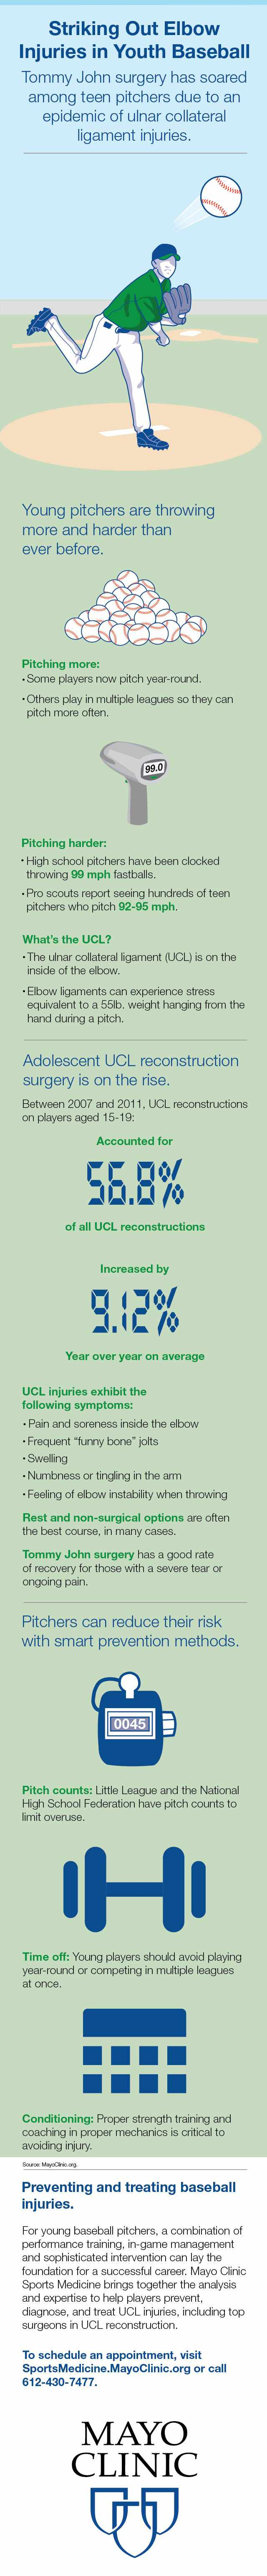 infographic for youth baseball injuries